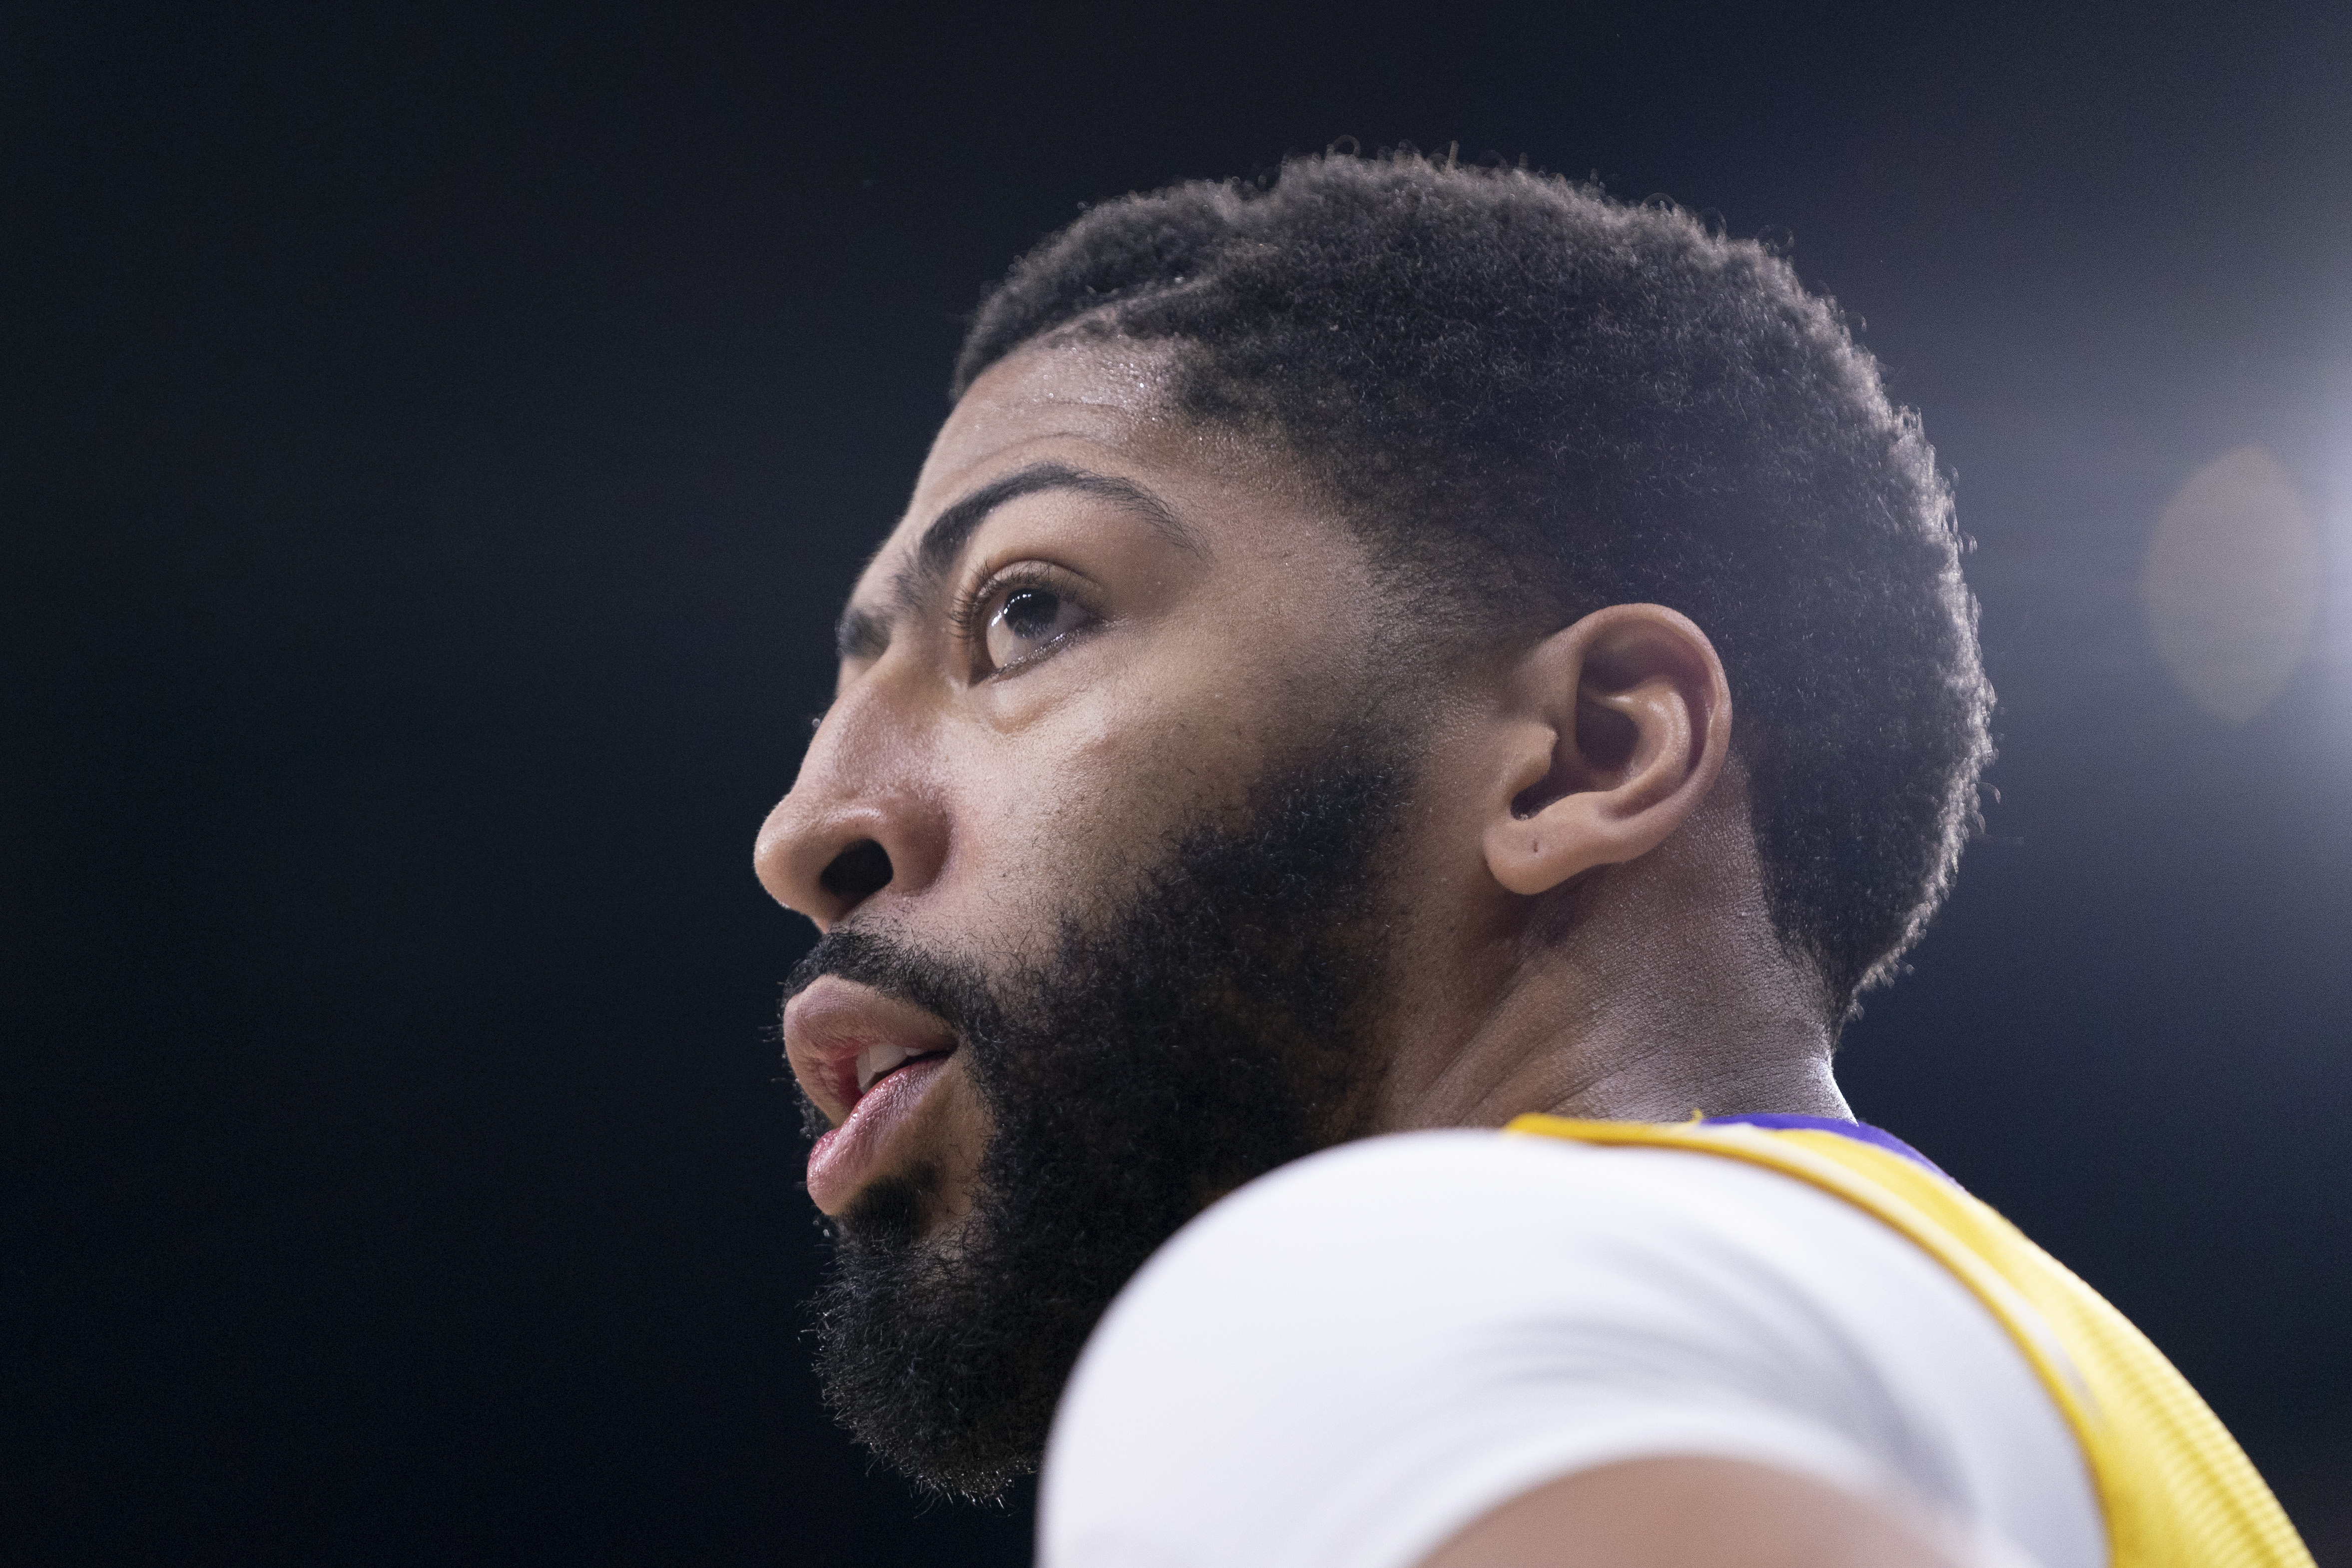 Anthony Davis headlines a so-so 2020 NBA free agency class. This is everything that basketball fans need to know about what is to come in free agency.Anthony Davis headlines a so-so 2020 NBA free agency class. This is everything that basketball fans need to know about what is to come in free agency.